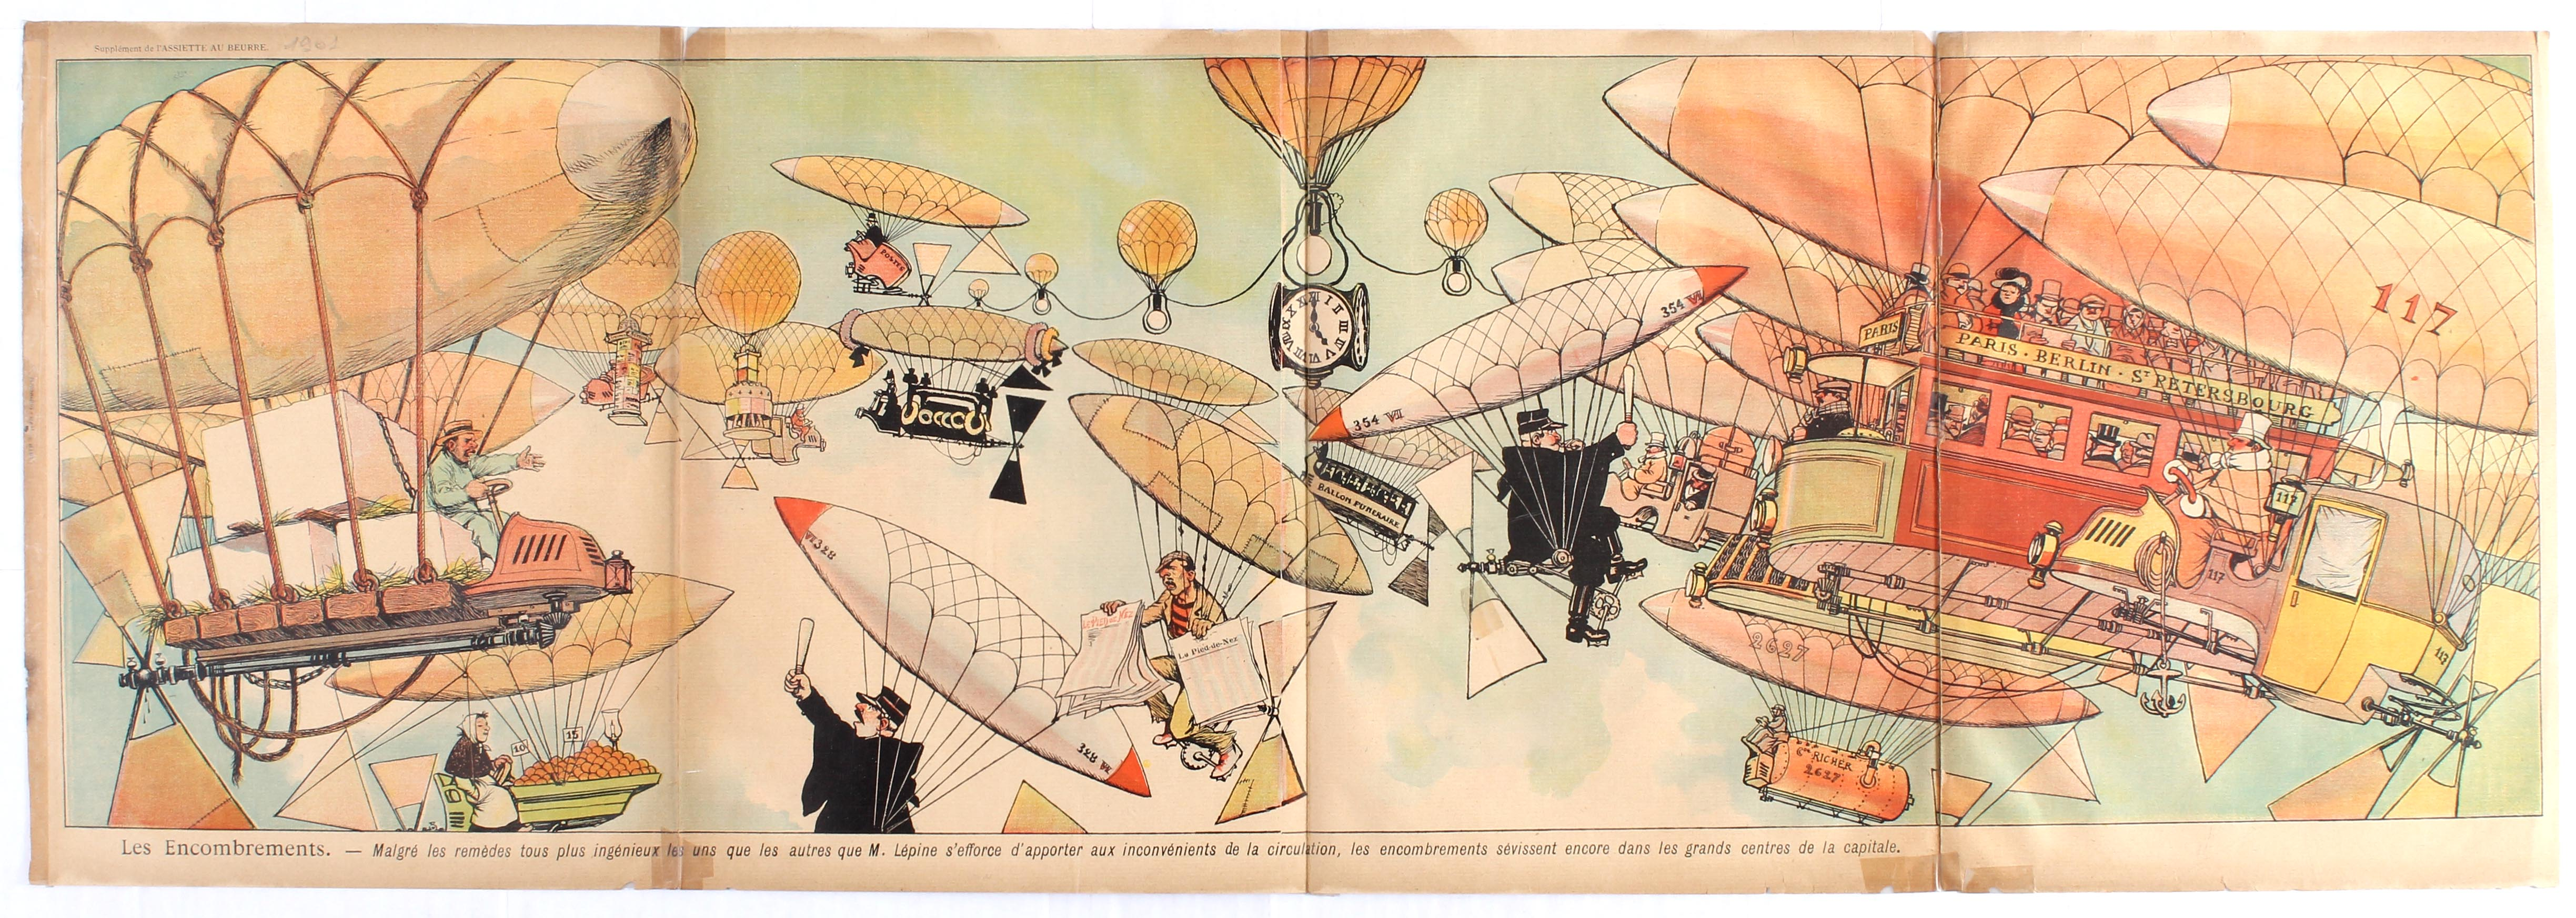 Lot 1000 - Advertising Poster Zeppelin Early Aviation